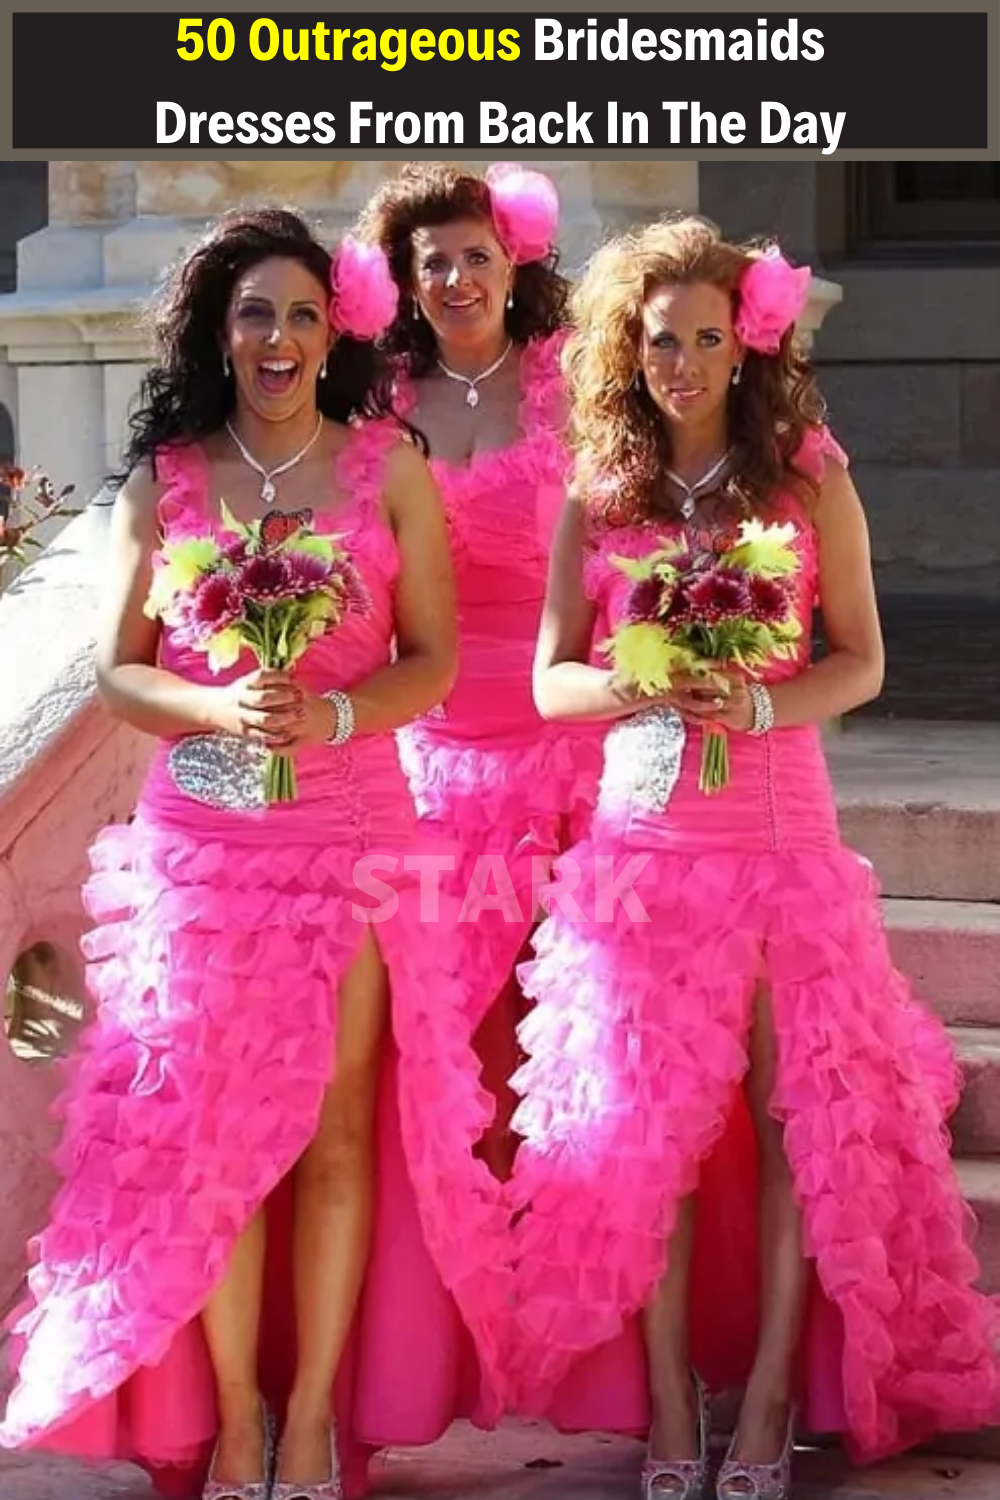 50 Outrageous Bridesmaids Dresses From Back In The Day That Show How Much Times Have Changed In 2020 Bad Bridesmaid Dresses Funny Dresses Horrible Bridesmaid Dresses